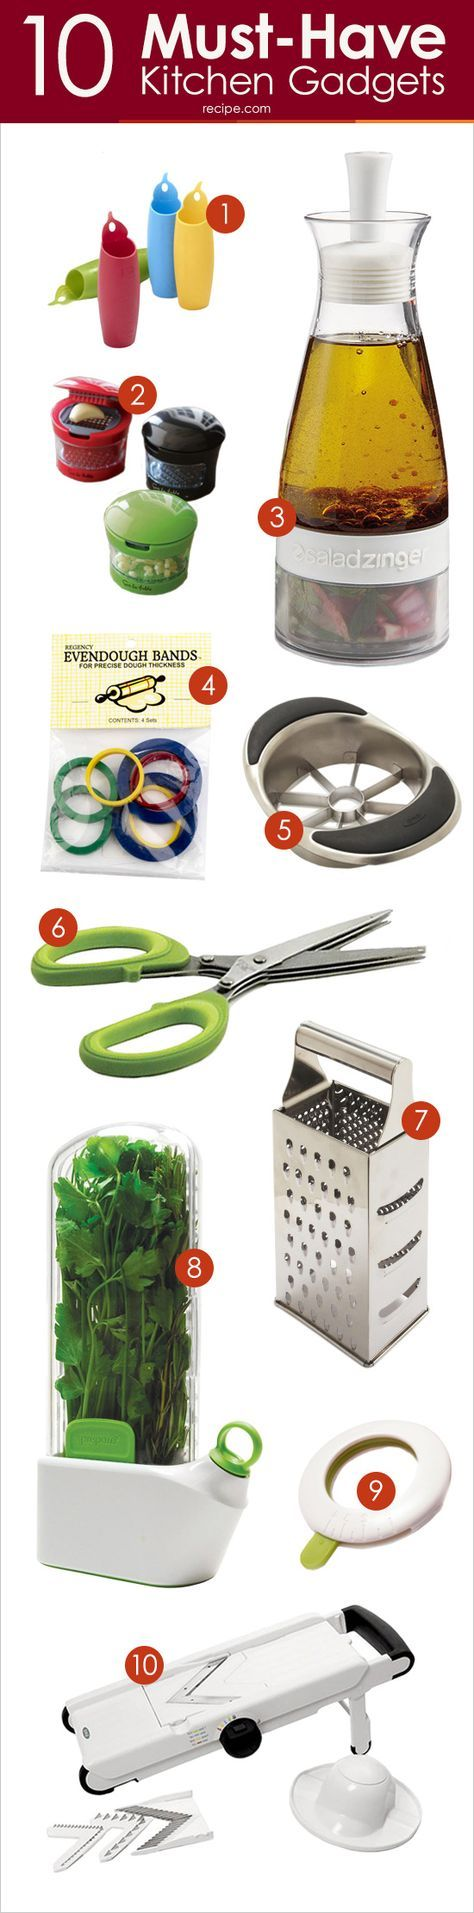 Must Have Kitchen Gadgets Best 25 Must Have Kitchen Gadgets Ideas On Pinterest  Ice Cube